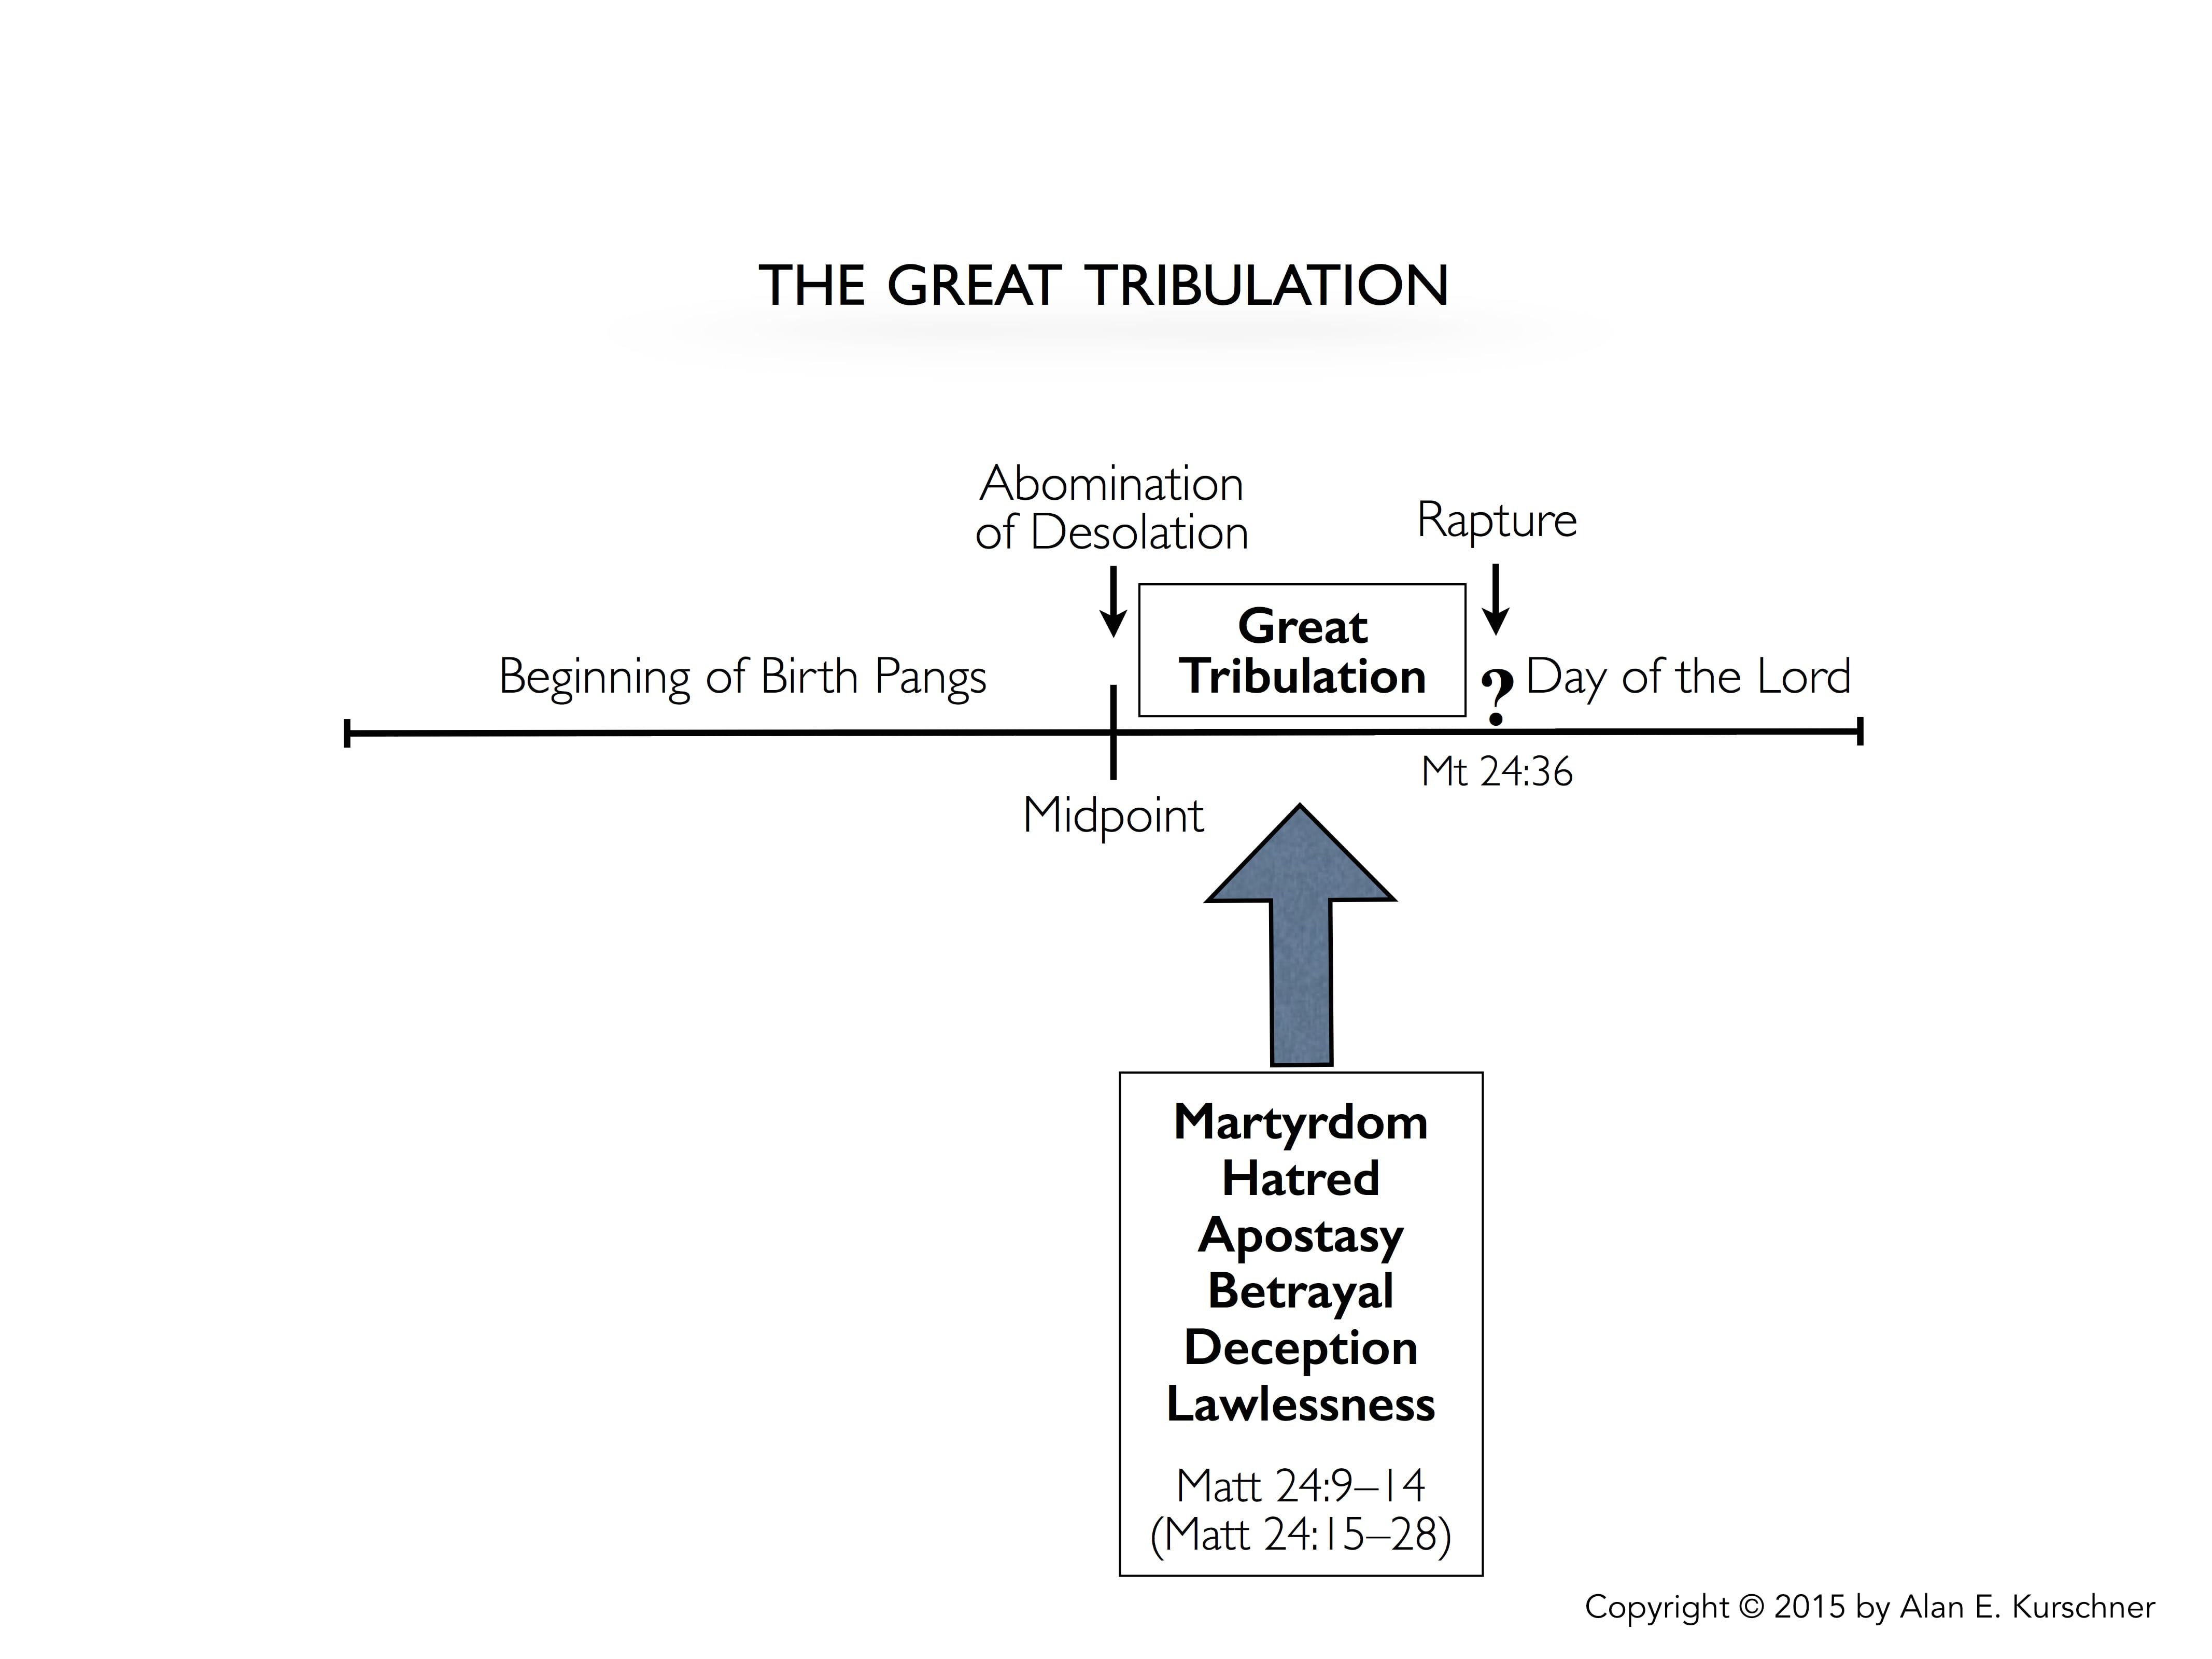 https://www.alankurschner.com/wp-content/uploads/2018/08/7.-The-Great-Tribulation.jpg